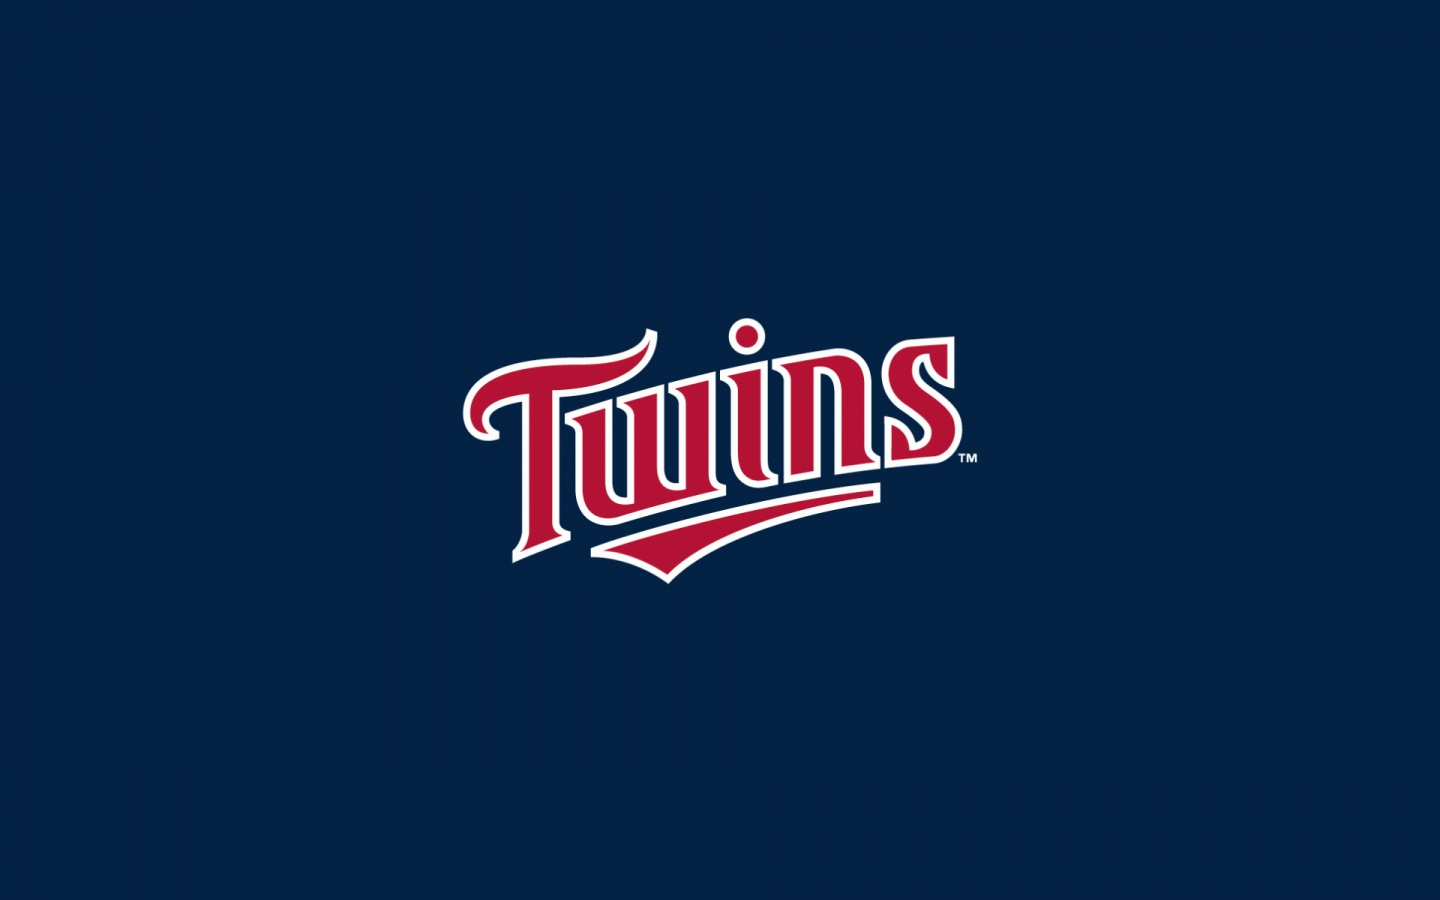 Minnesota Twins Desktop Background Download HD Wallpapers 1440x900